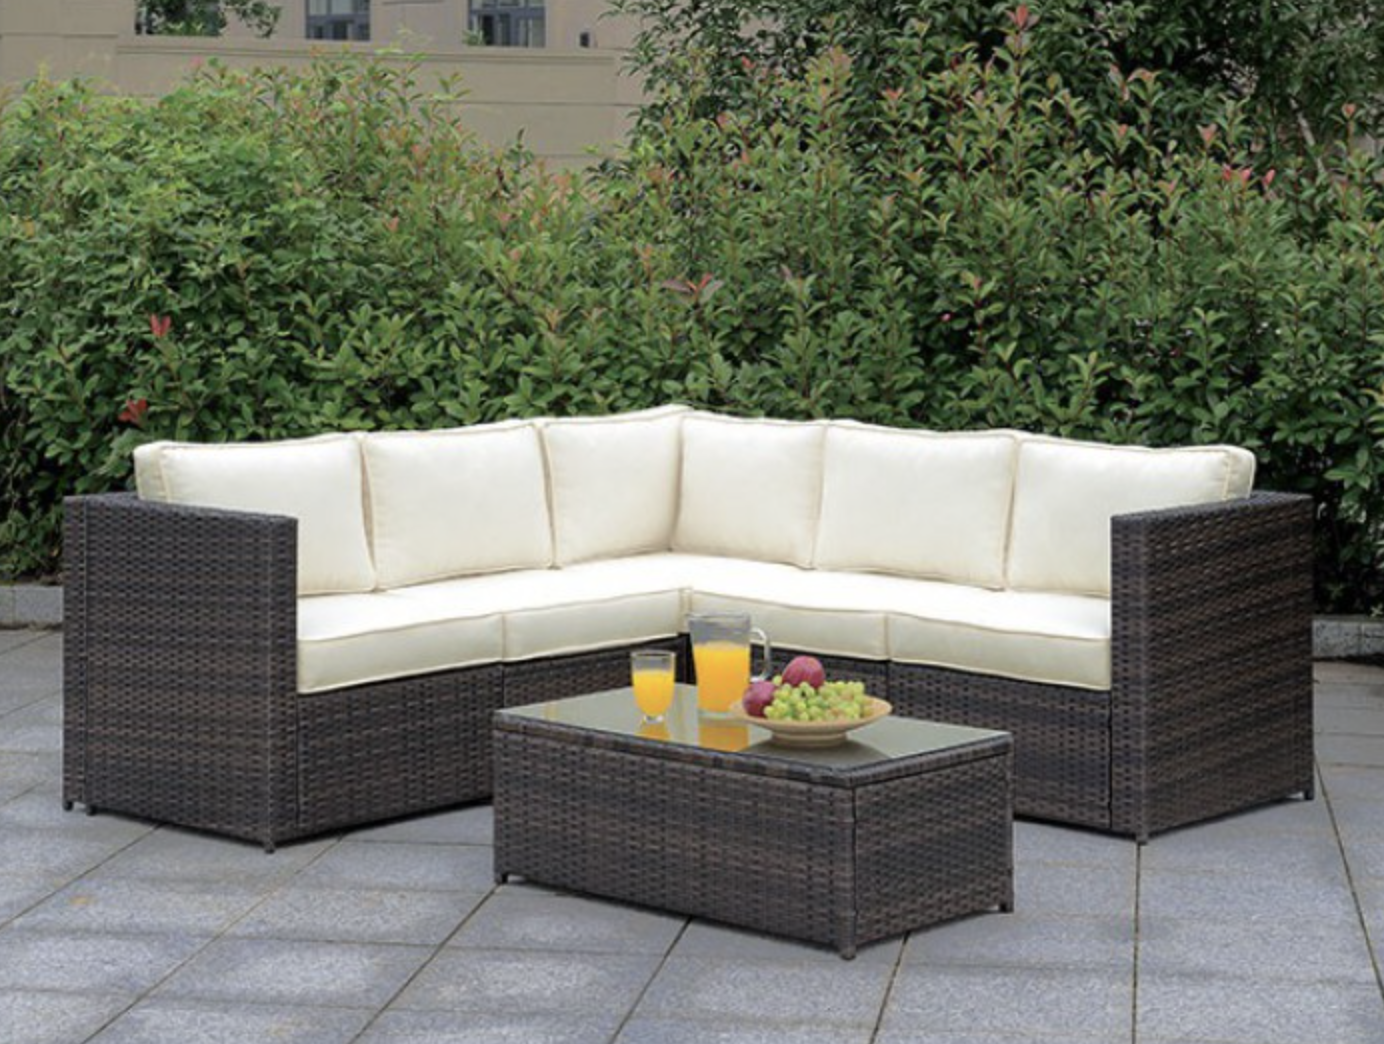 L shape sectional 5 peice outdoor set